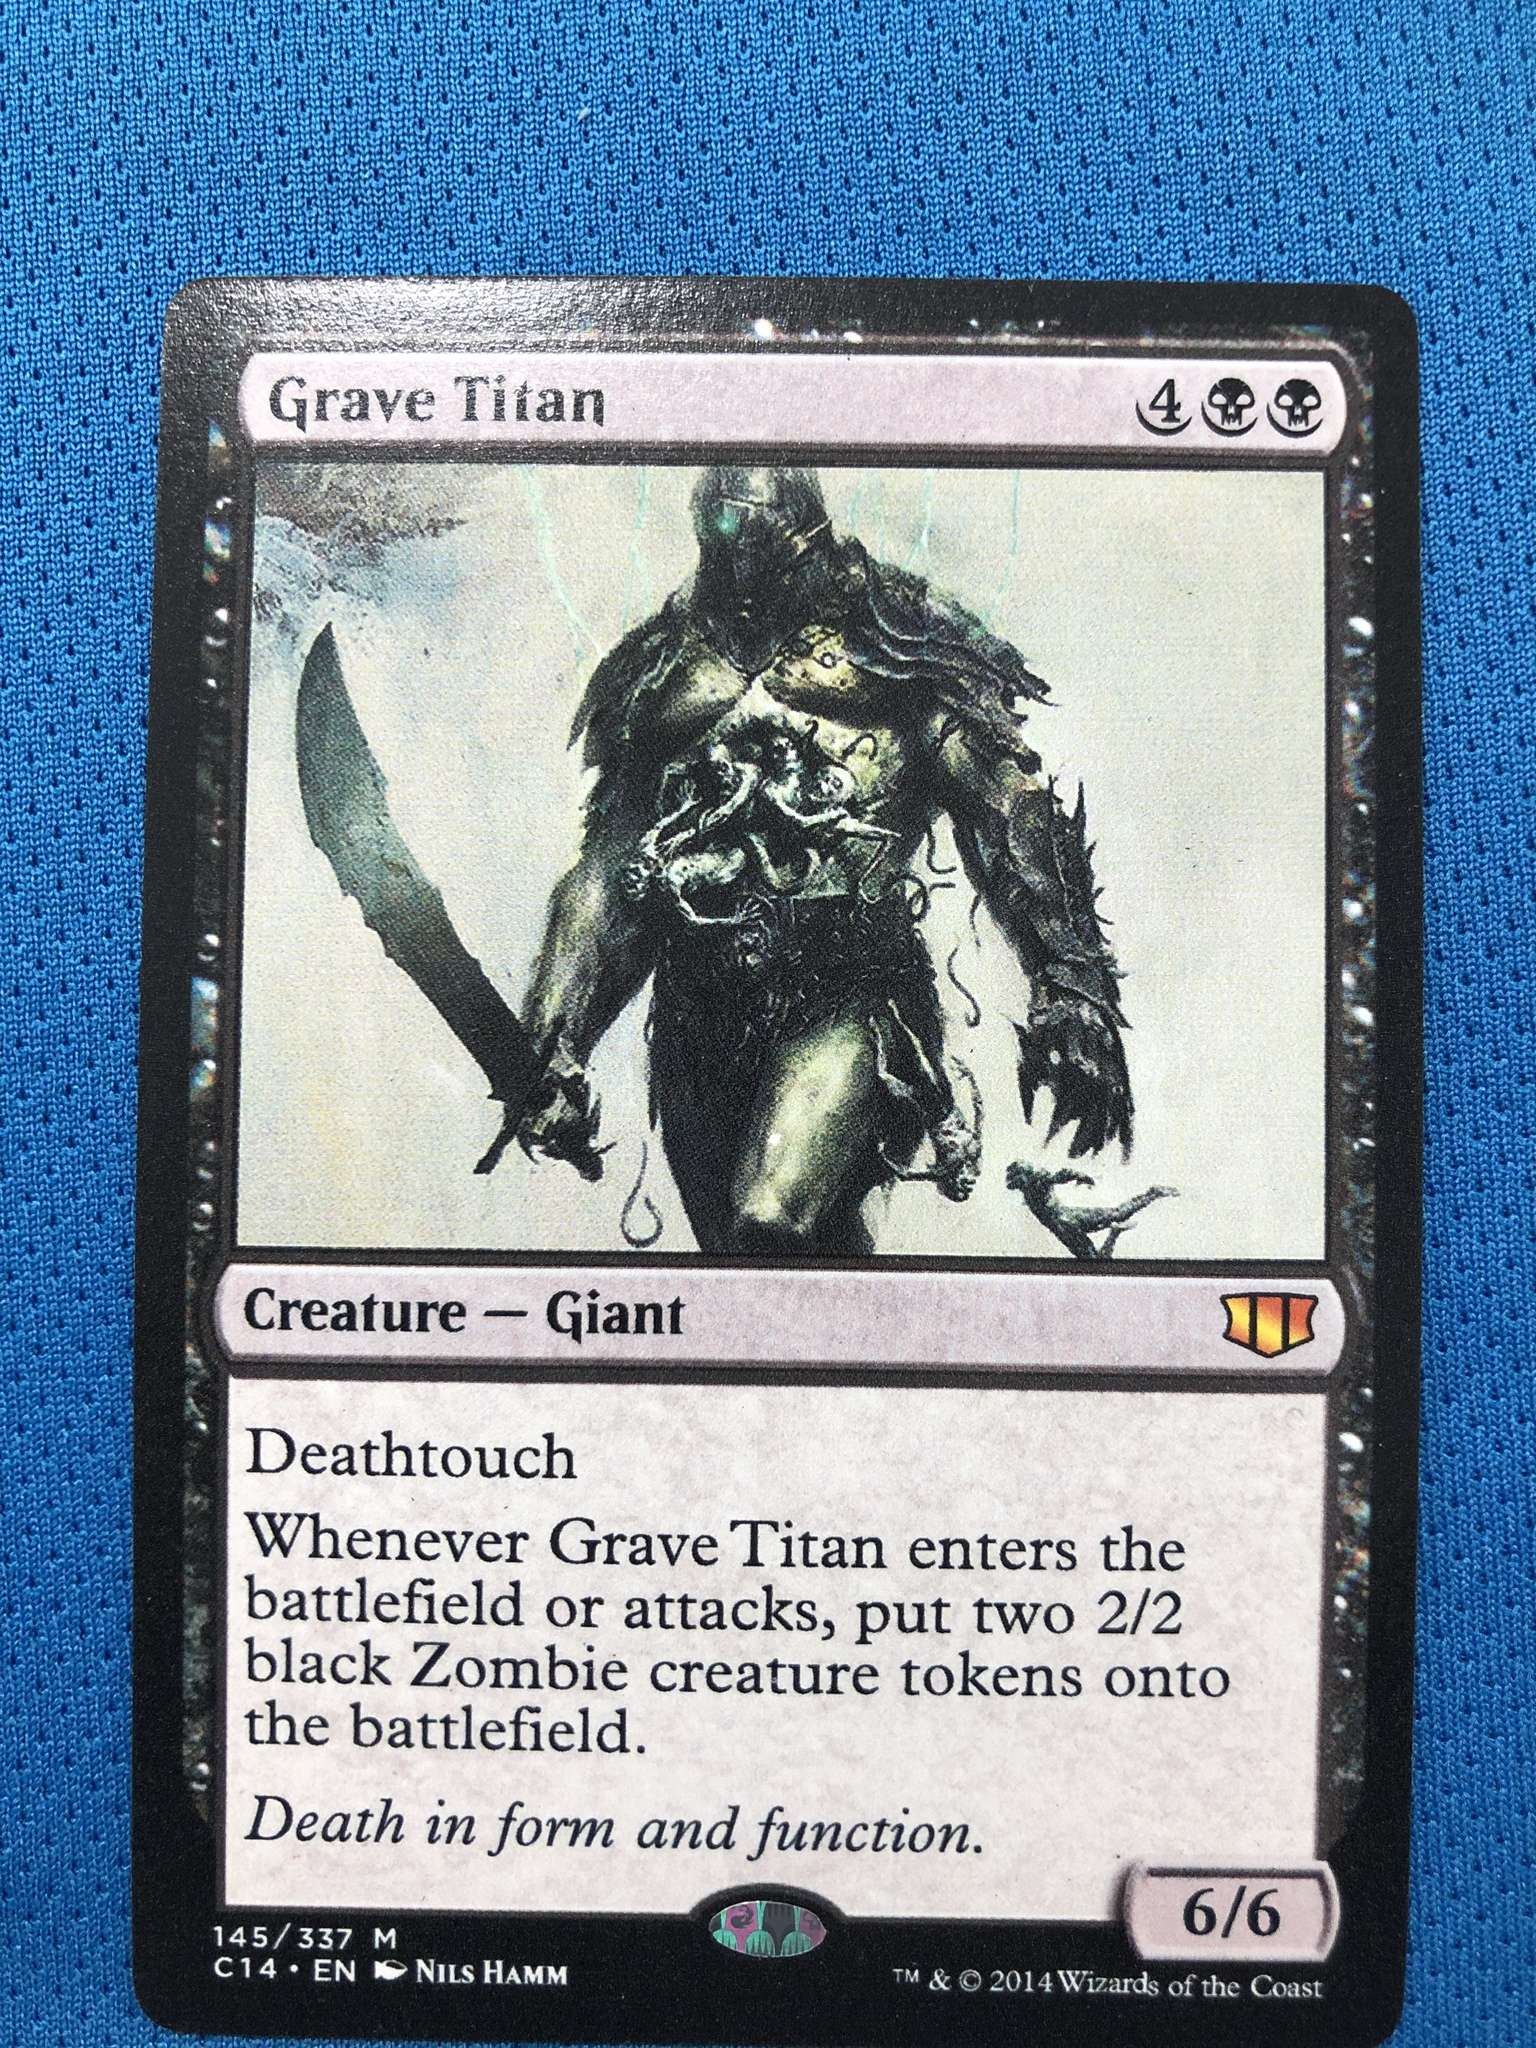 Grave TitanCommander 2014 Hologram Magician ProxyKing 8.0 VIP The Proxy Cards To Gathering Every Single Mg Card.